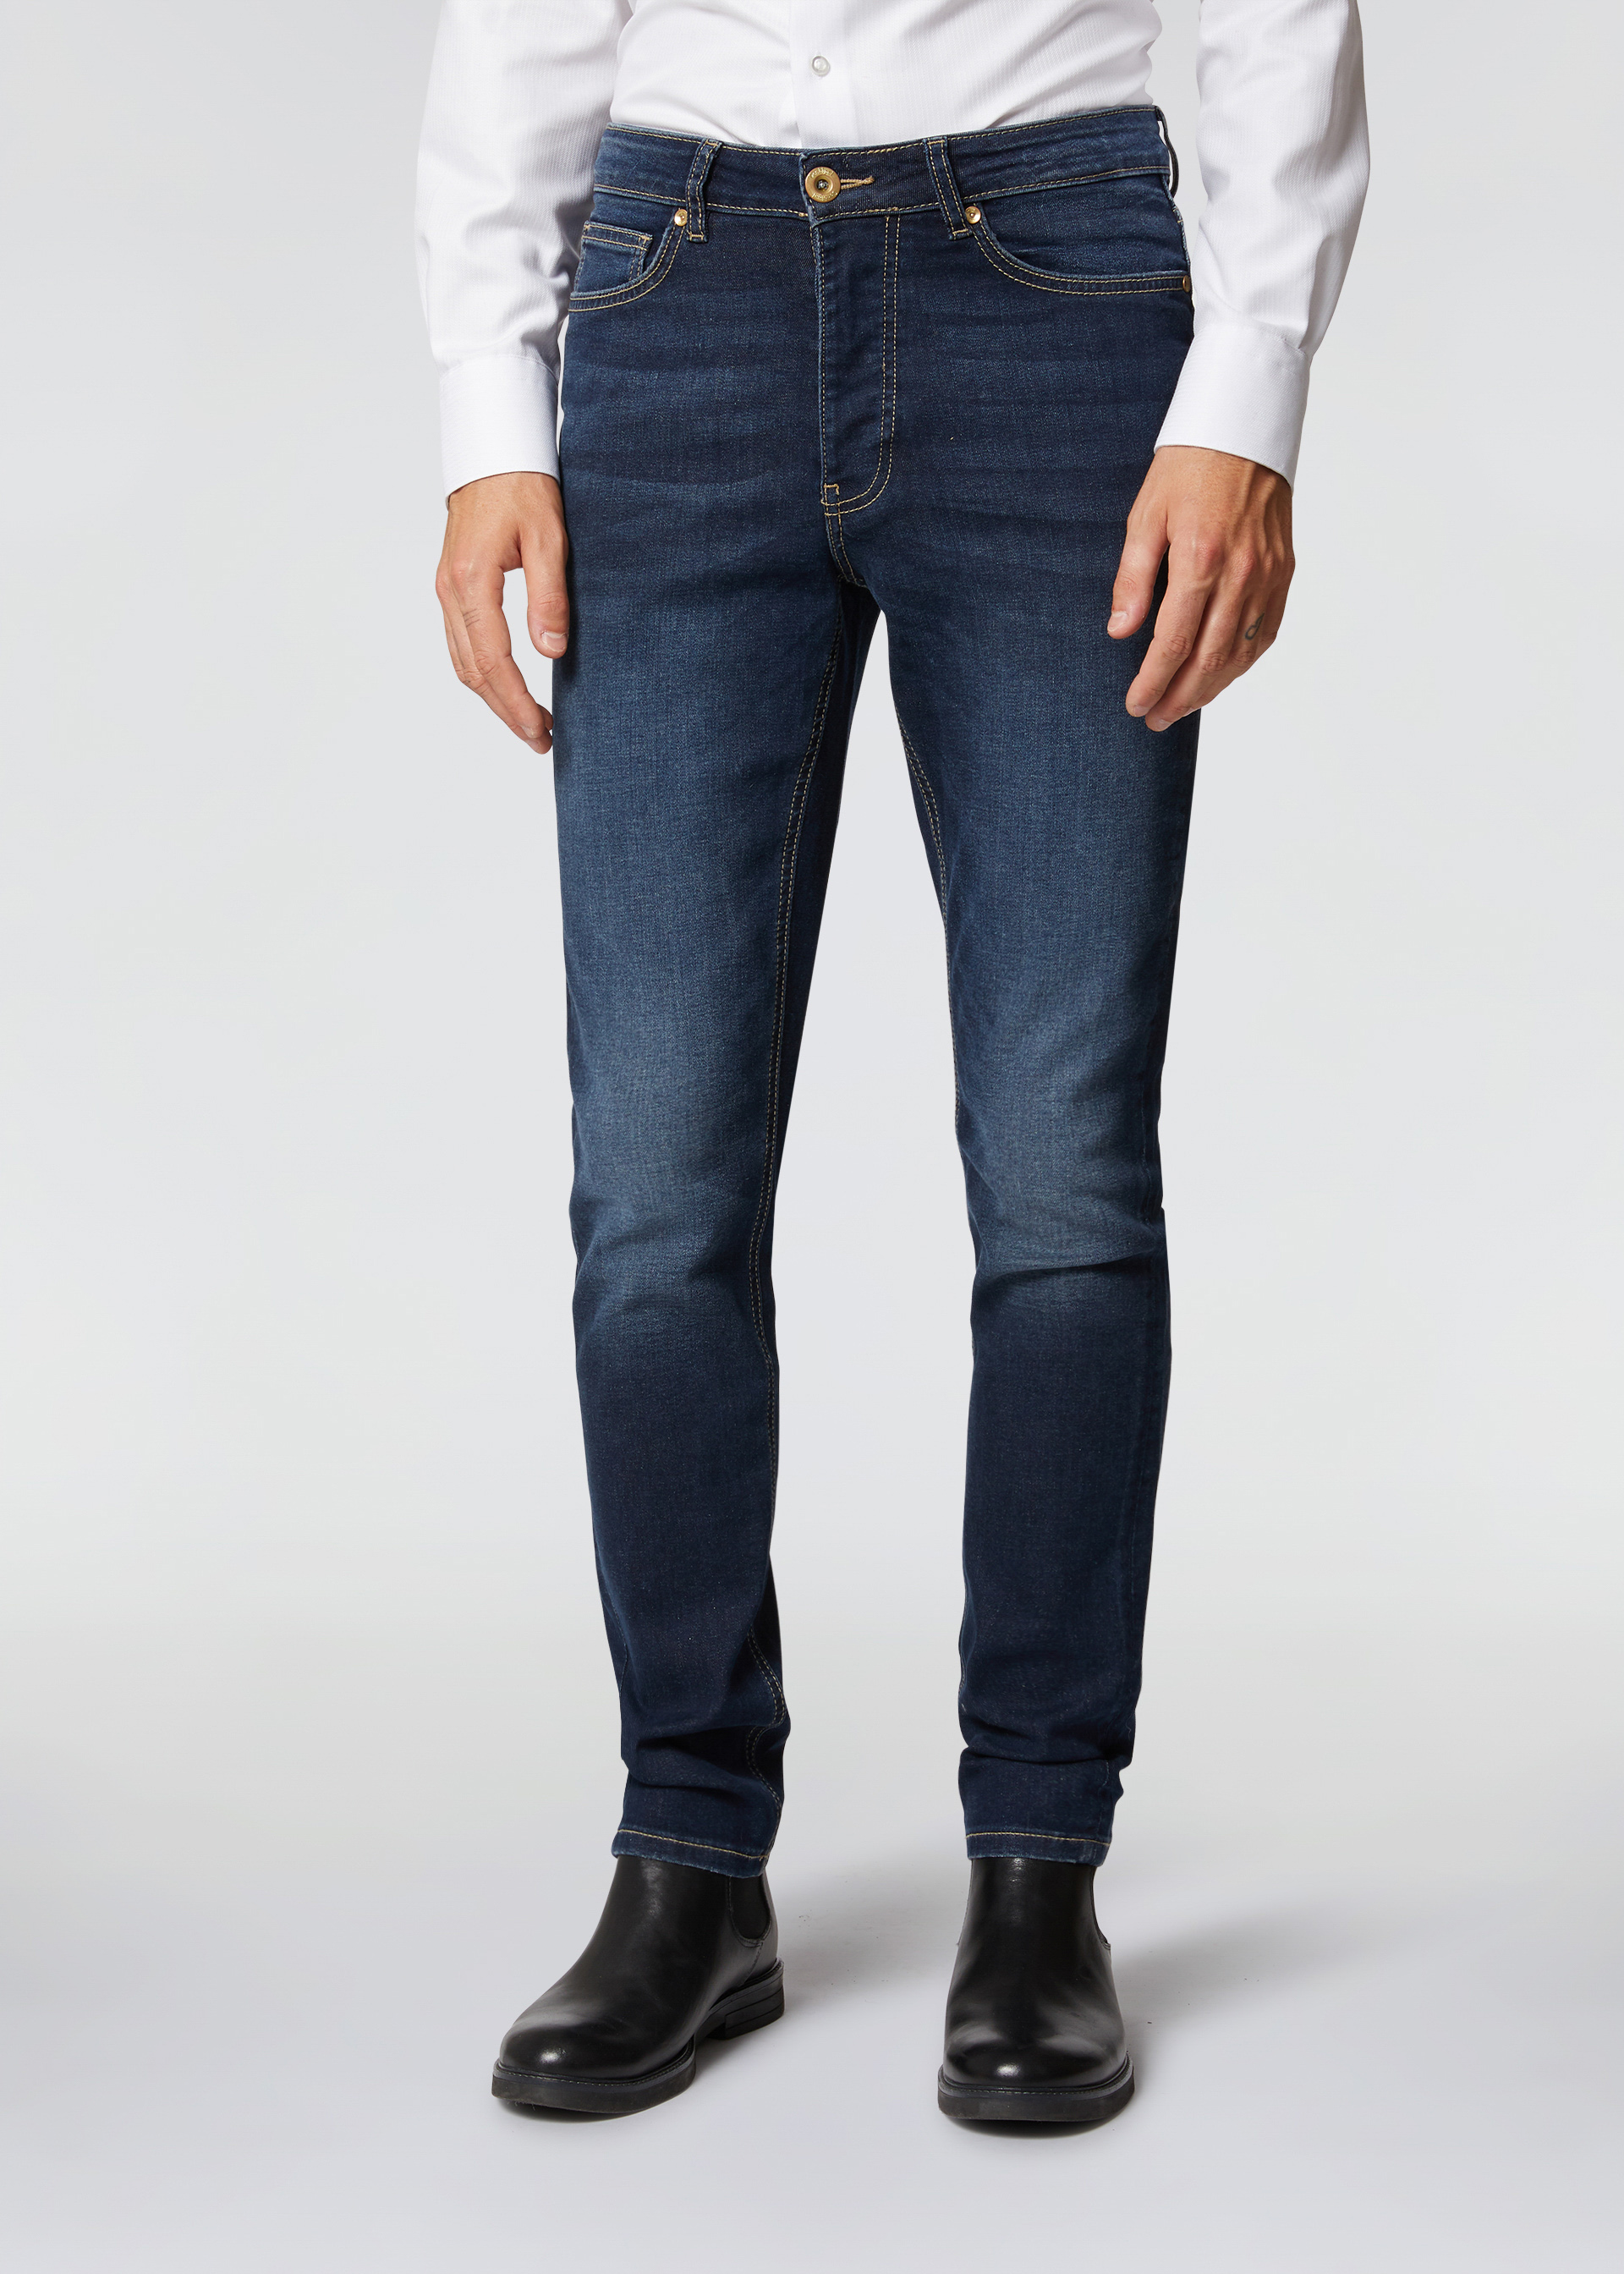 Denim vita bassa stretch